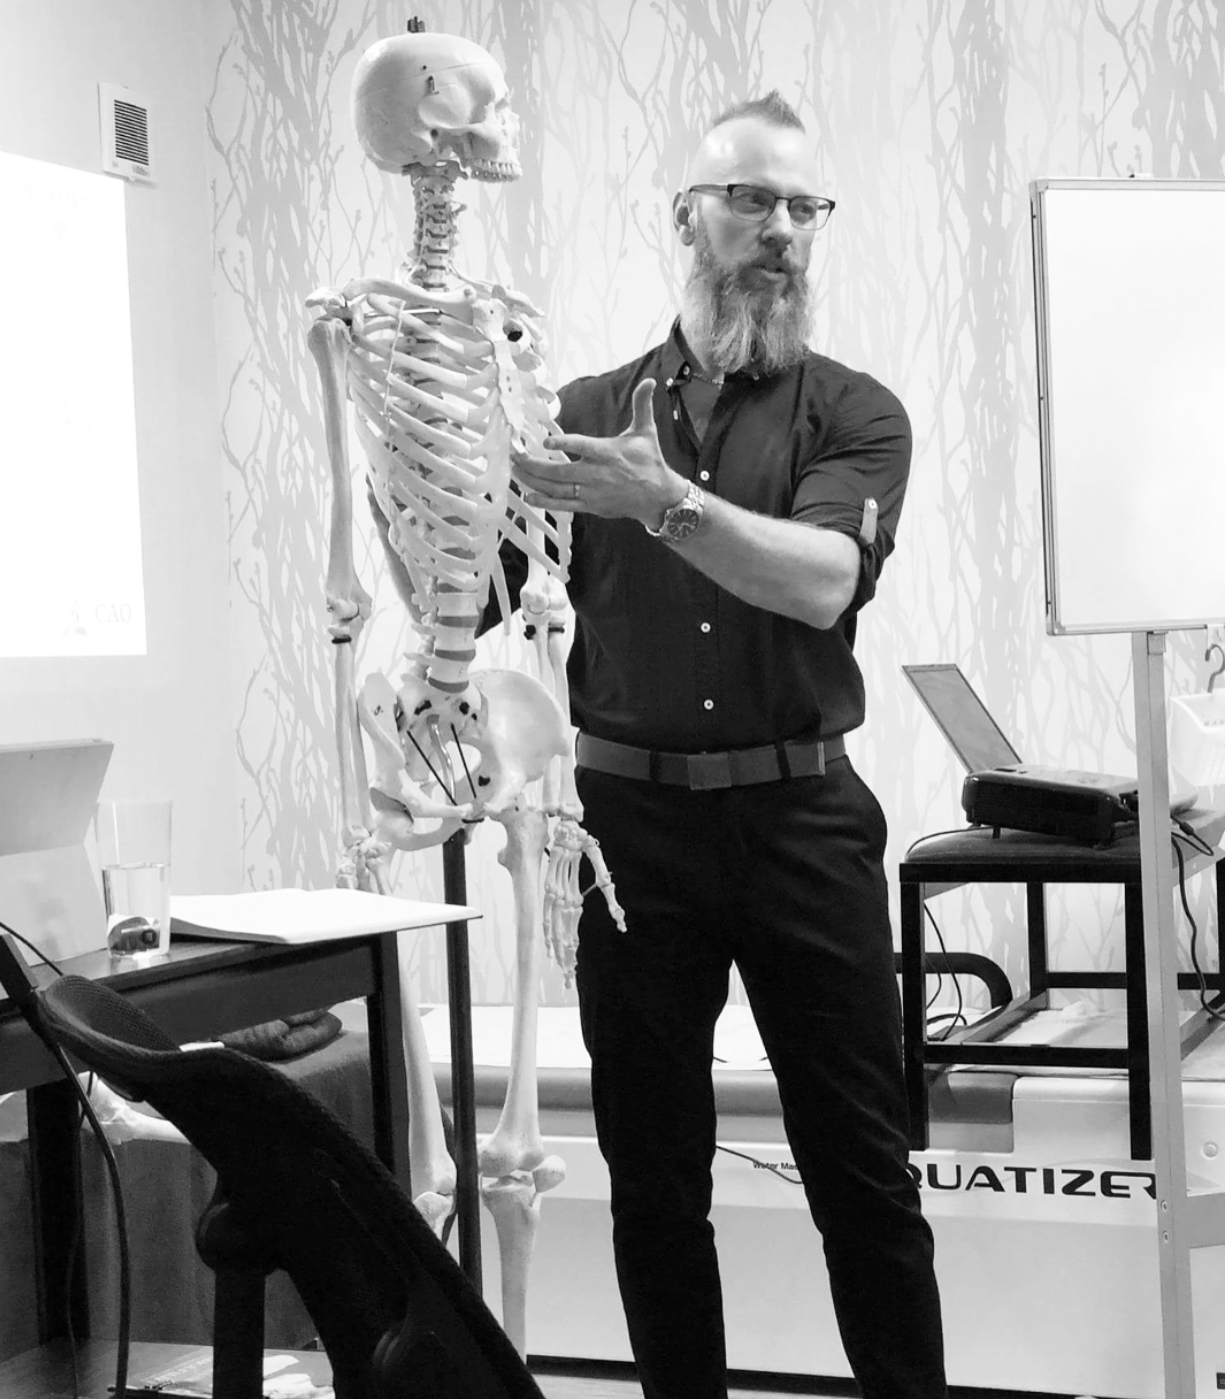 As well as being a dedicated clinician, Darren also accompanies The Canadian Academy of Osteopathy around the world to lecture on the mechanical principles of osteopathy. Here, he is lecturing to the JICO audience in Japan in 2017..